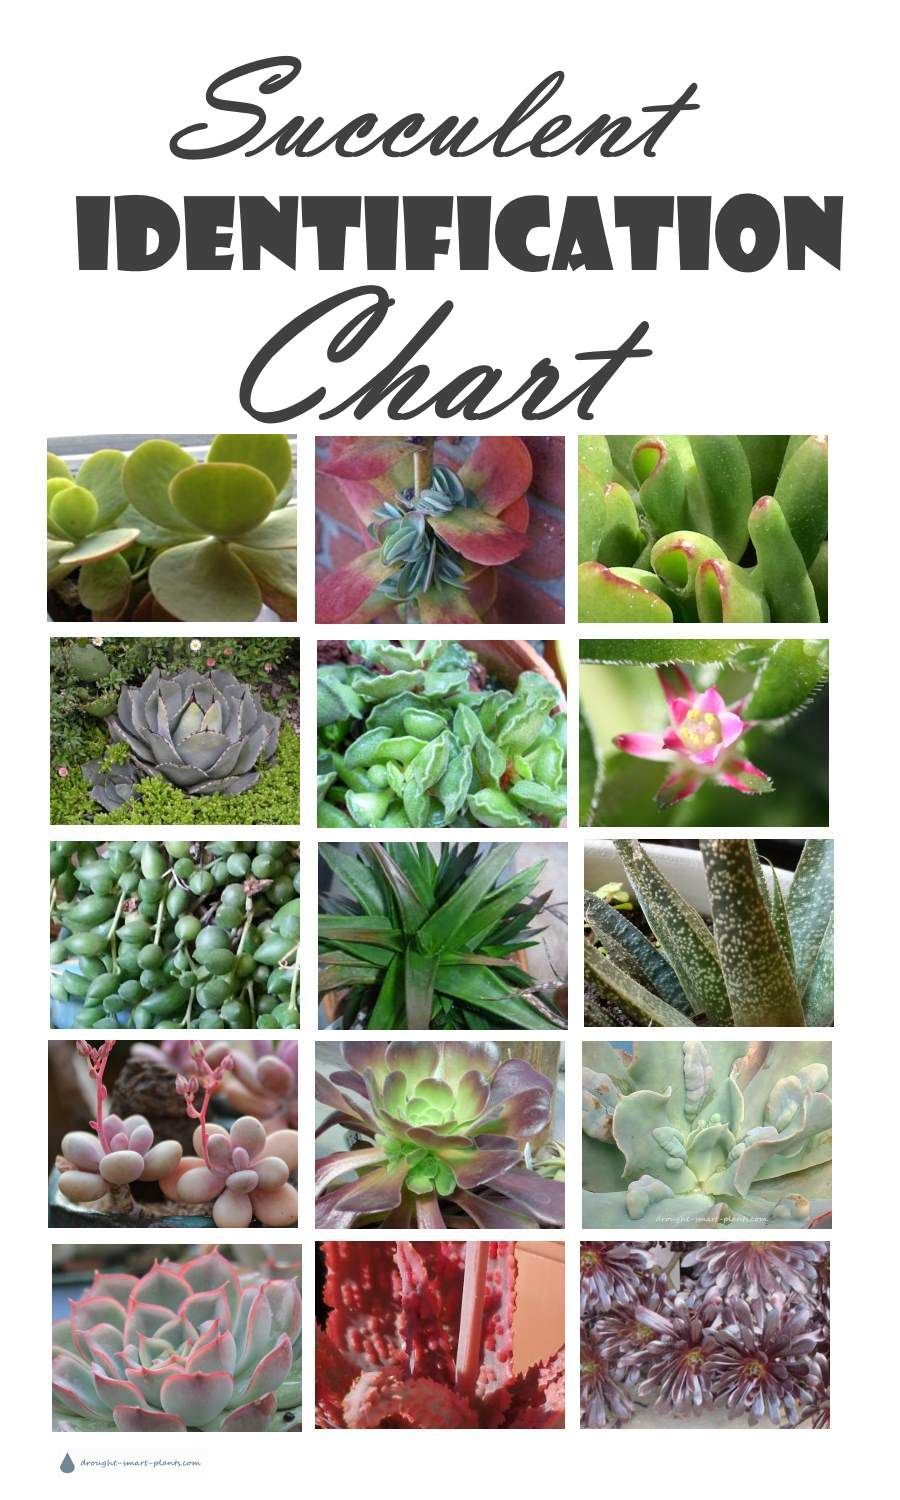 Succulent Identification Chart Gathering Descriptions And Names For All Kinds Of Succulents Is Bewildering There Are Just So Many